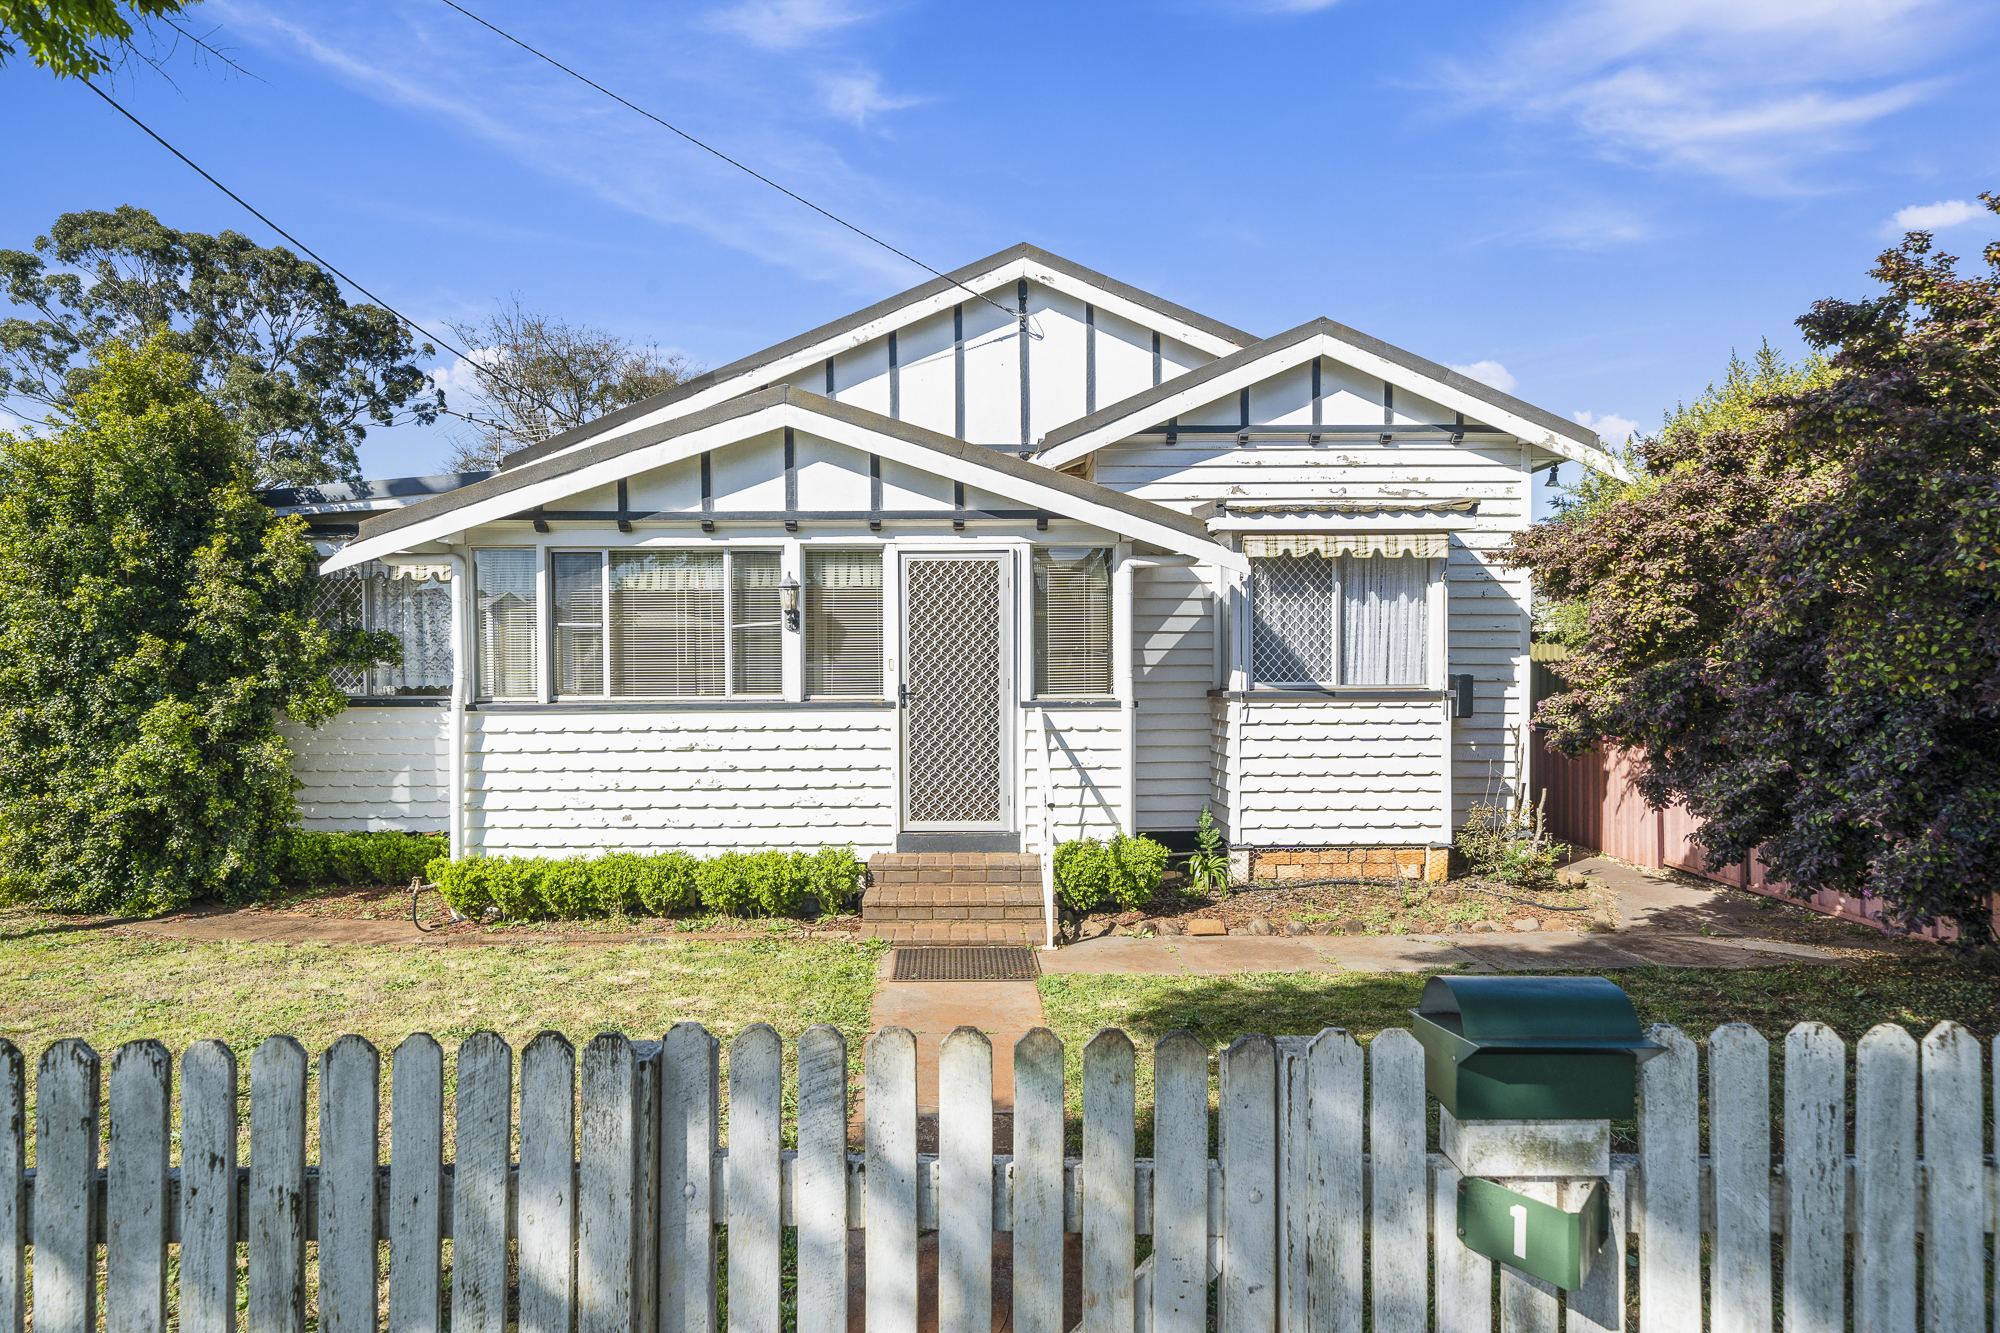 Classic Triple Gable Home in Historic Newtown. Auction Onsite 23 Oct at 10am